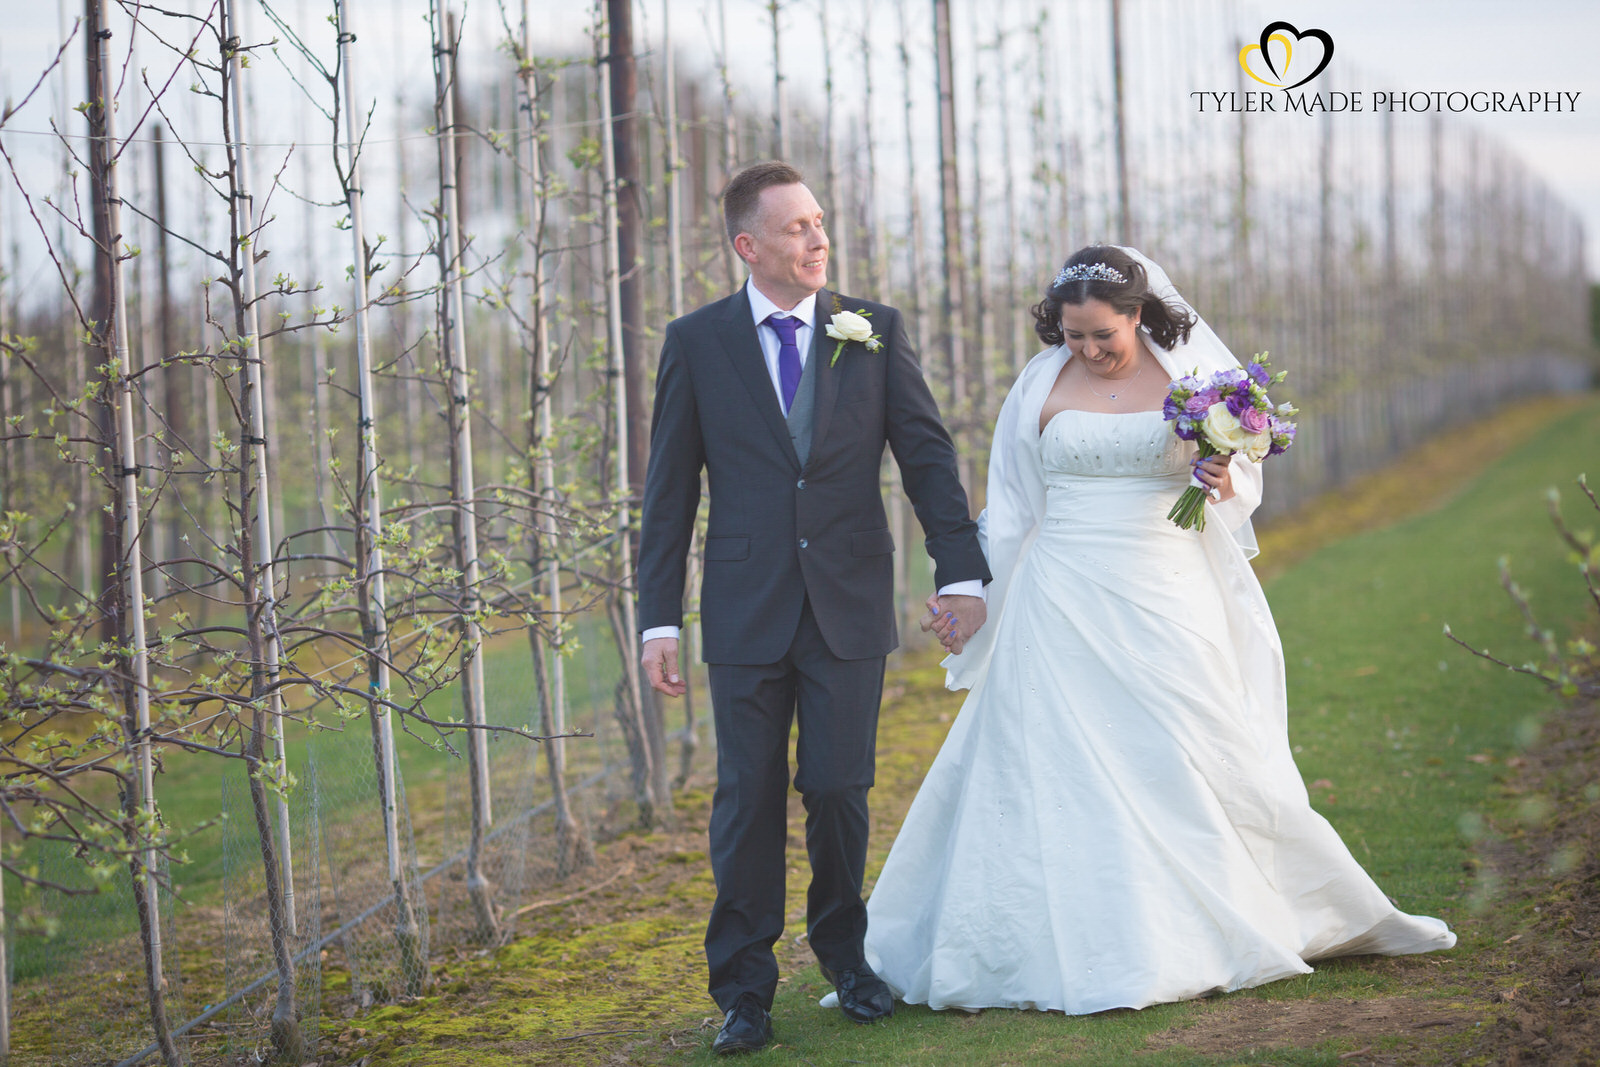 Bride and Groom at The Barn, Upchurch Wedding Venue by Kent Wedding Photographer Tyler Made Photography